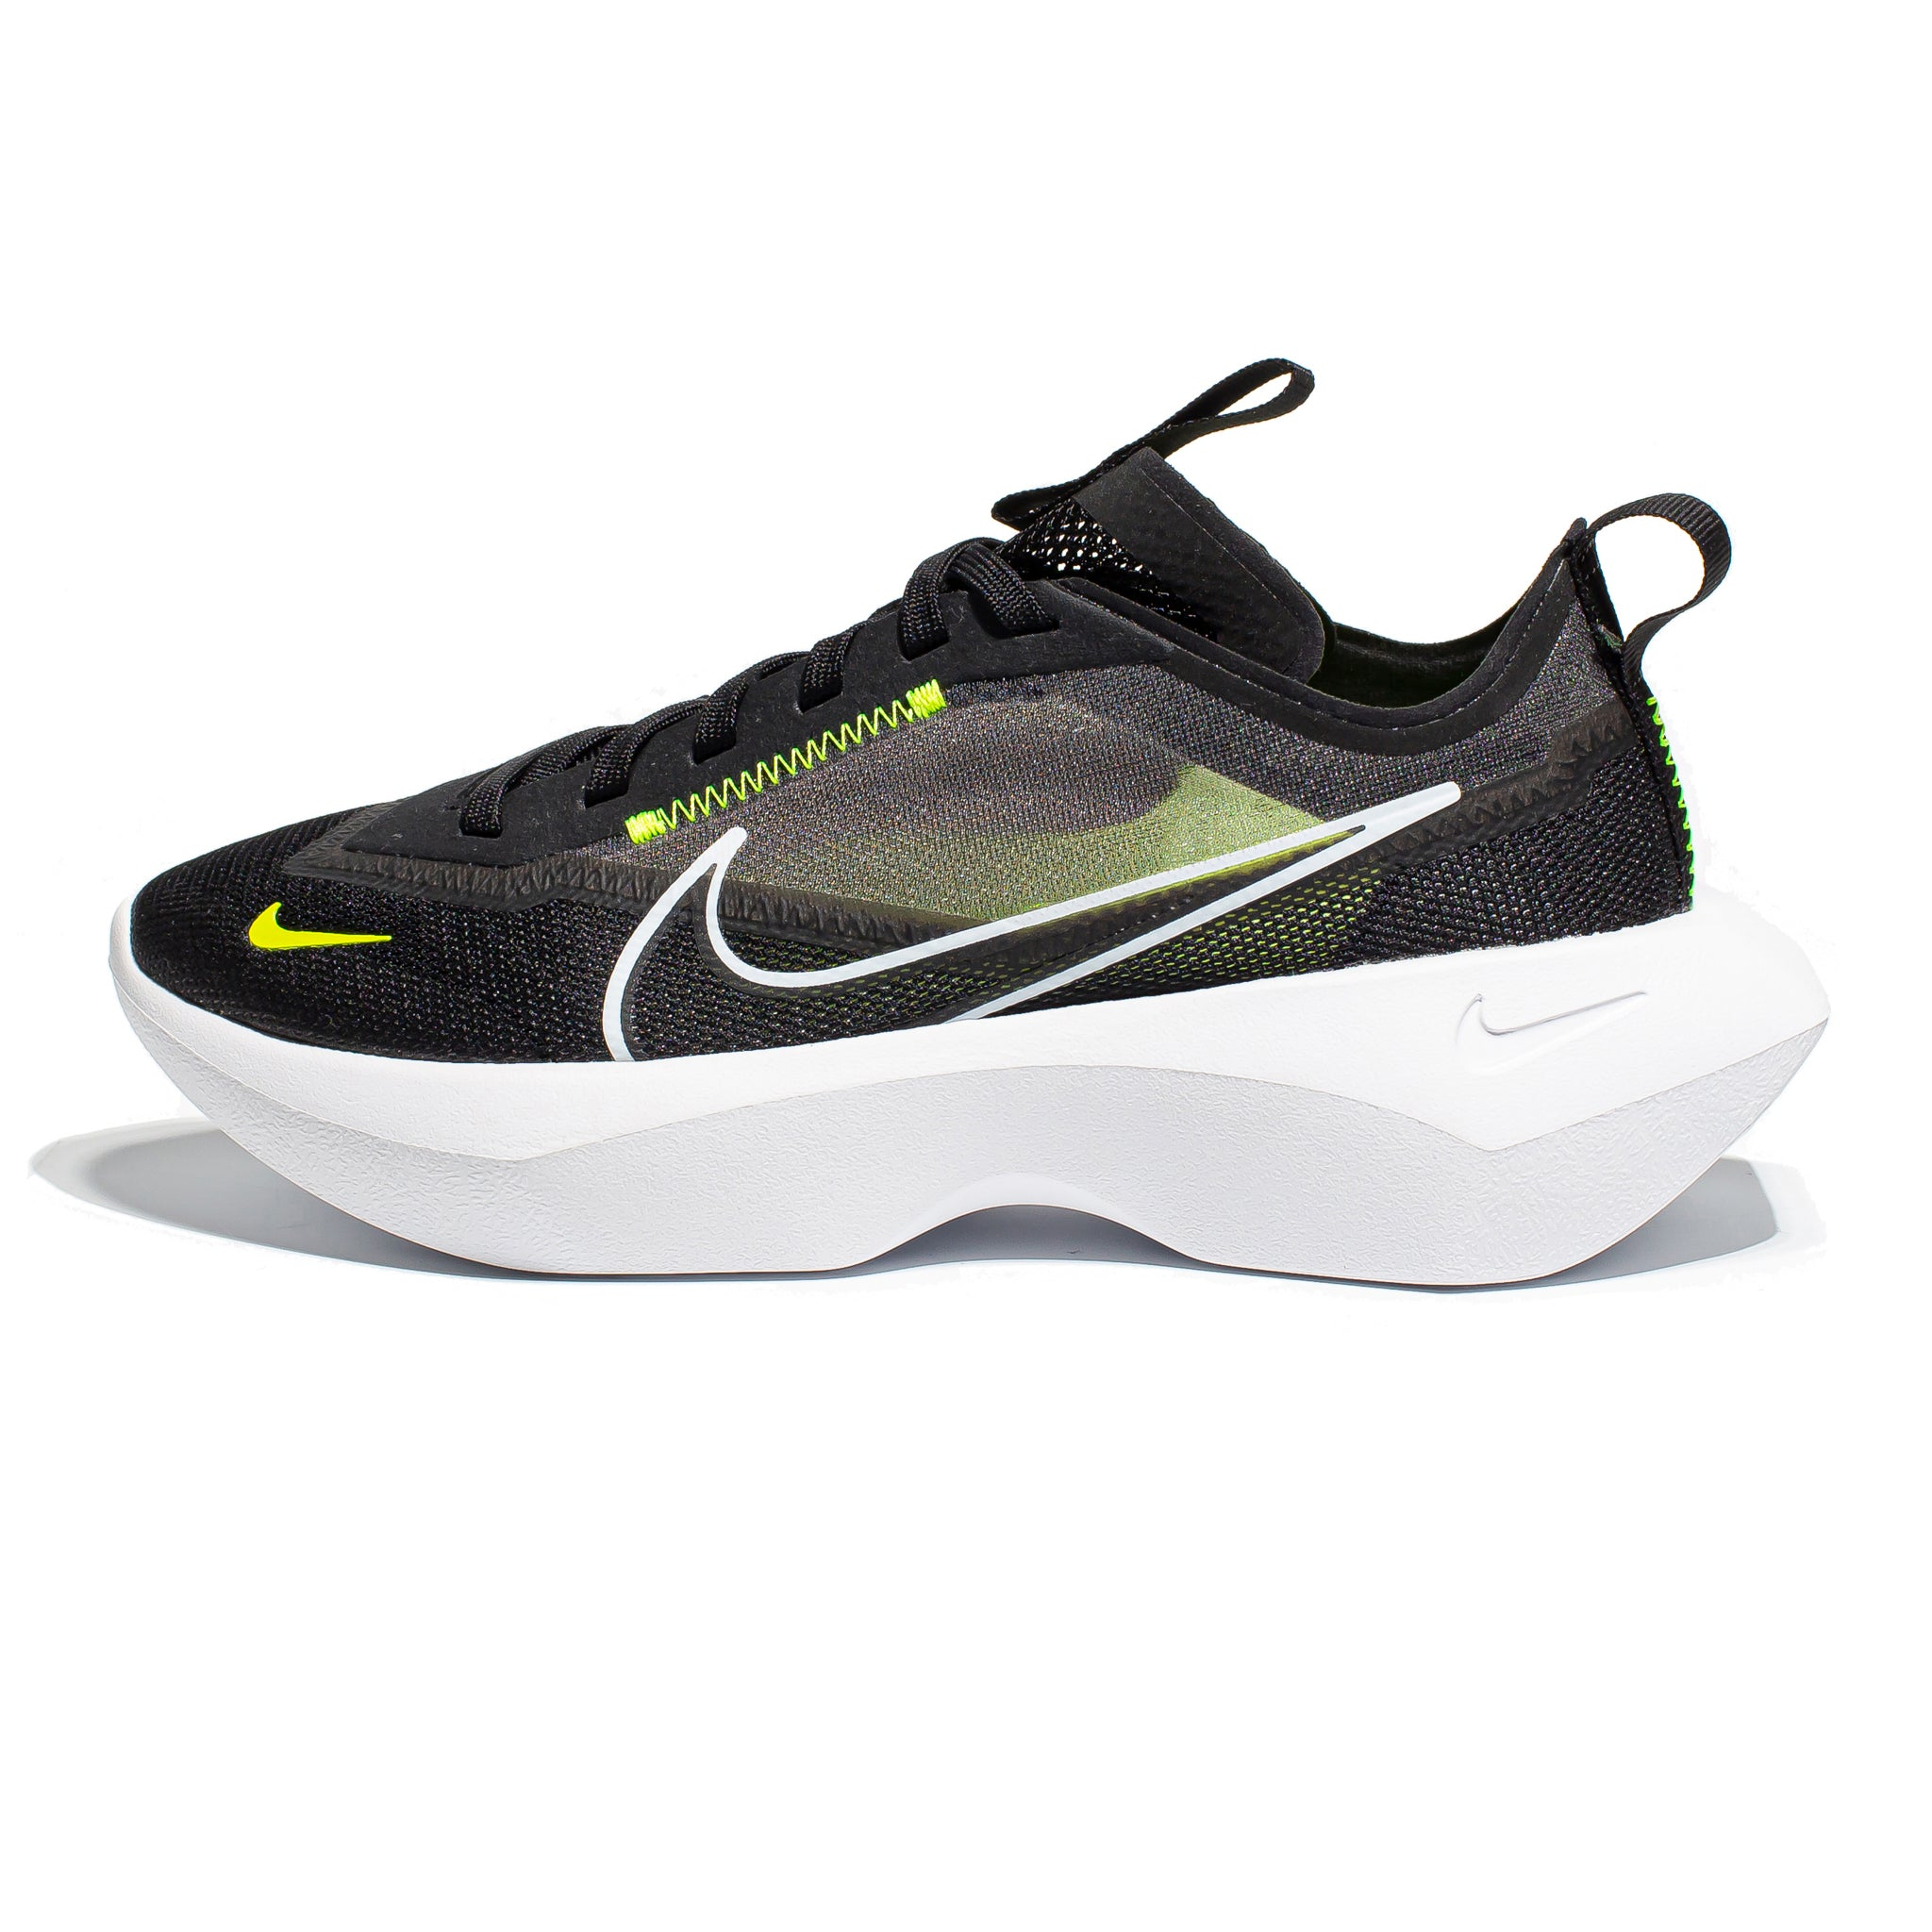 Nike Vista Lite 'Black/Lemon Venom'